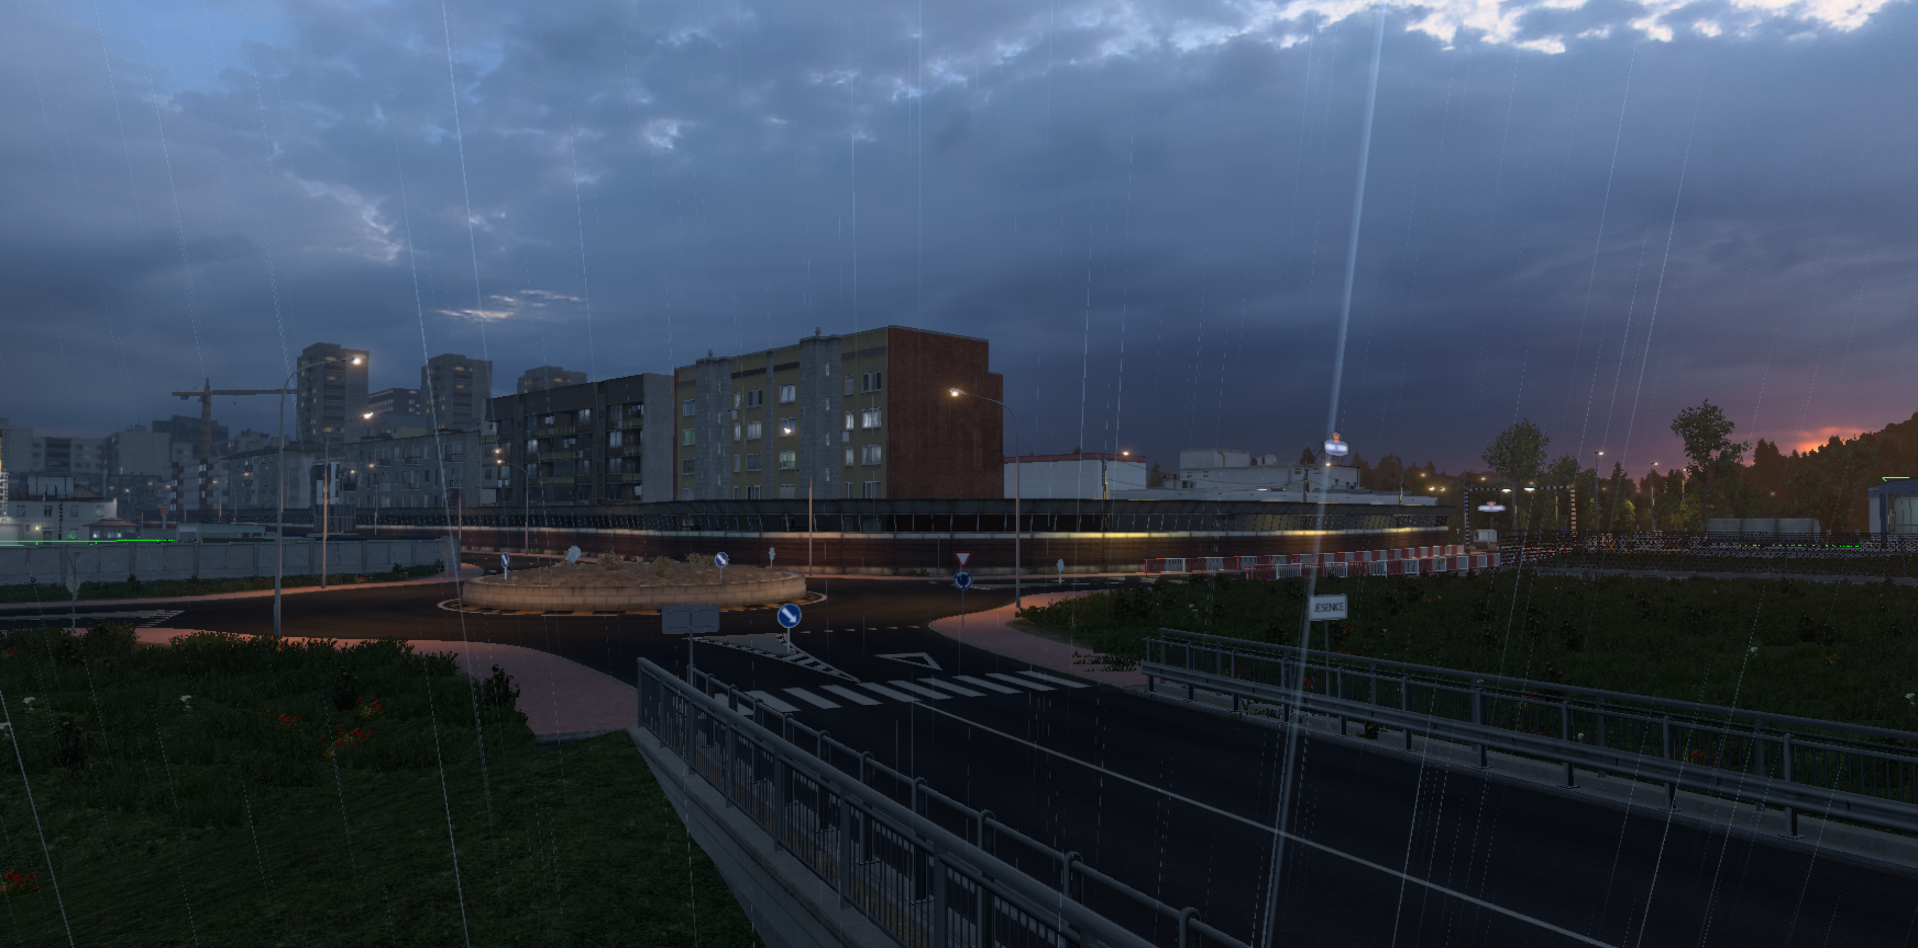 ets2_20210804_144454_00.png